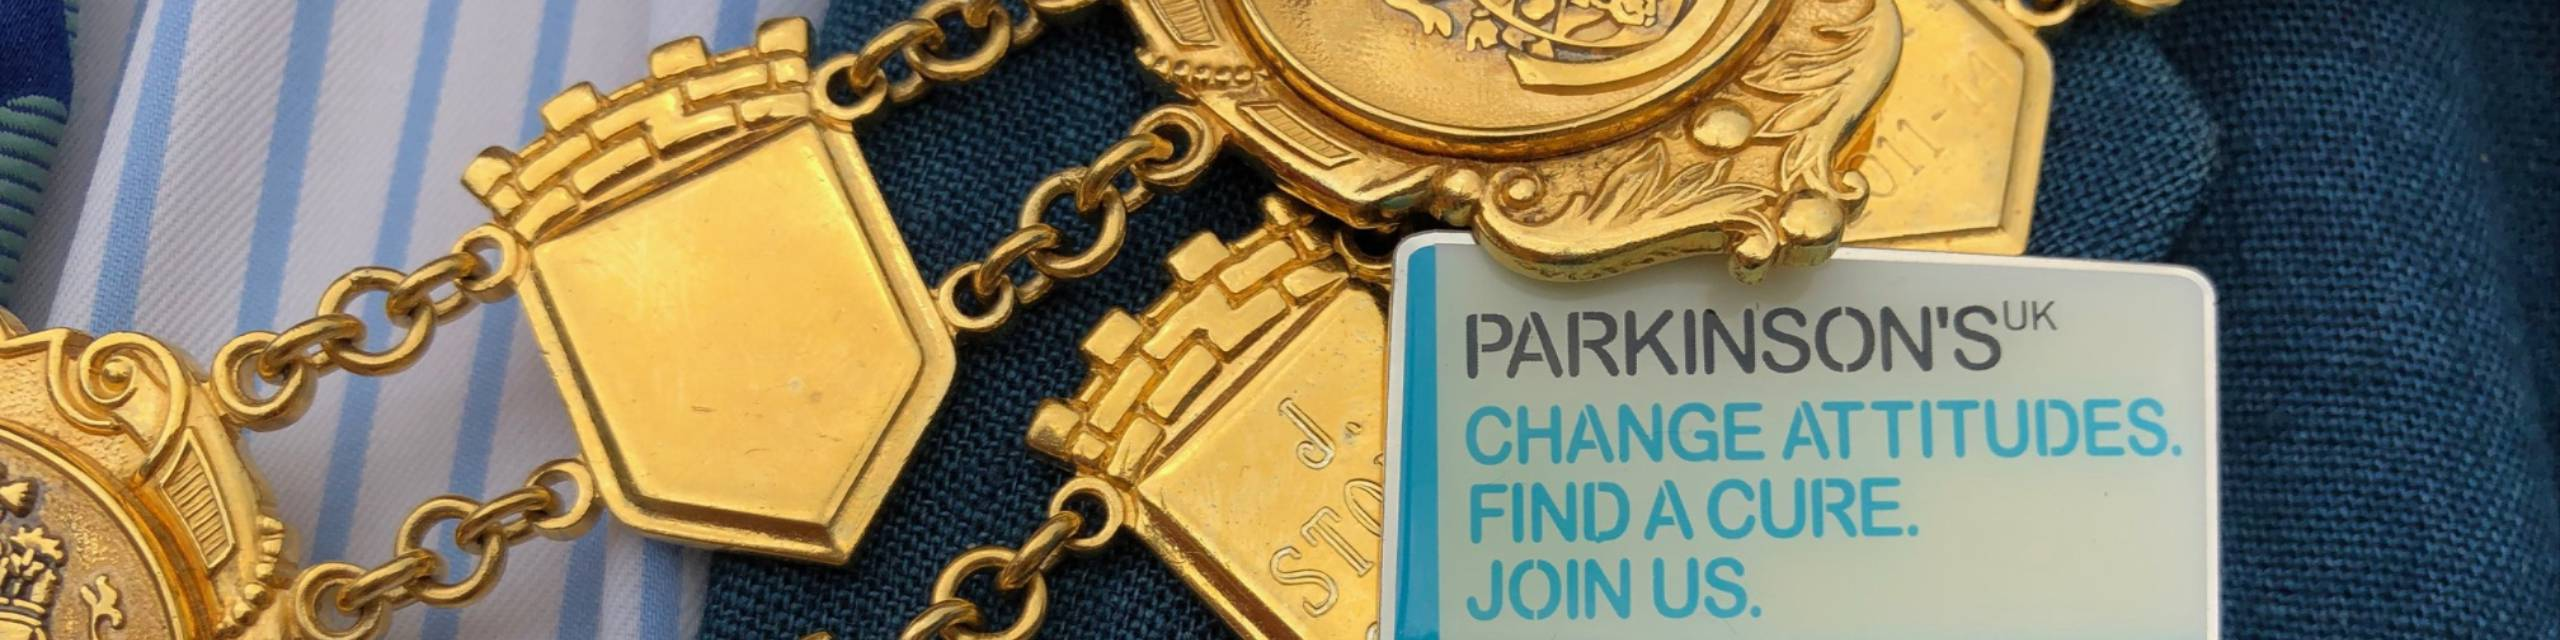 Parkinson's UK badge next to the Chairman's chains